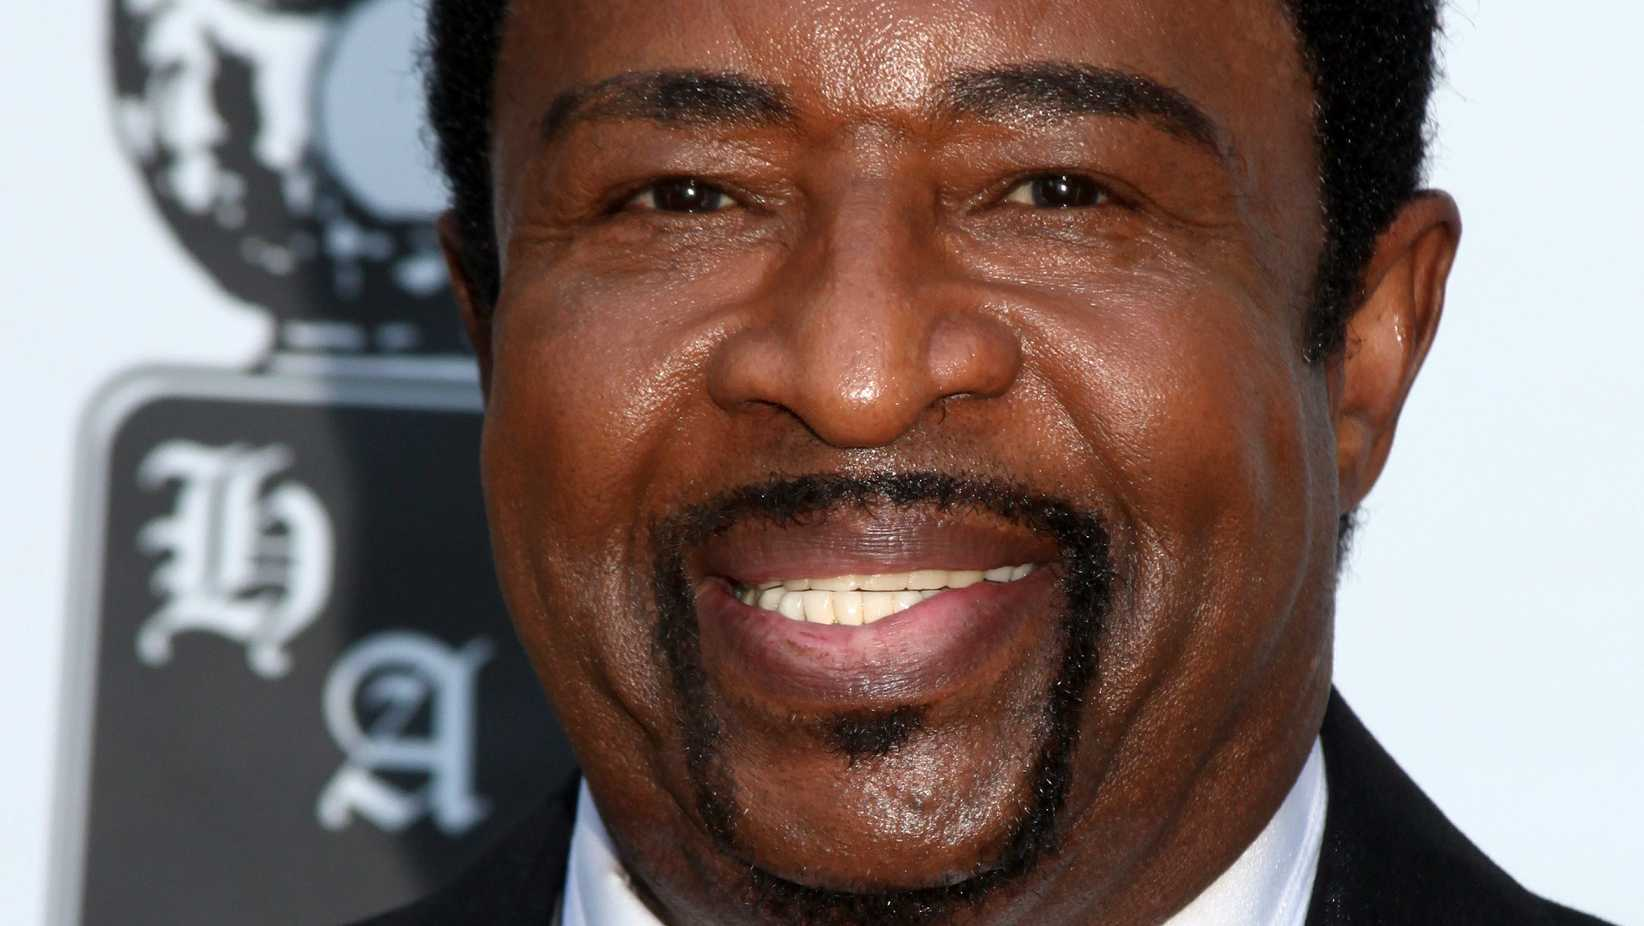 Singer Dennis Edwards of The Temptations attends the 24th Annual Heroes And Legends Awards at Beverly Hills Hotel on September 22, 2013 in Beverly Hills.